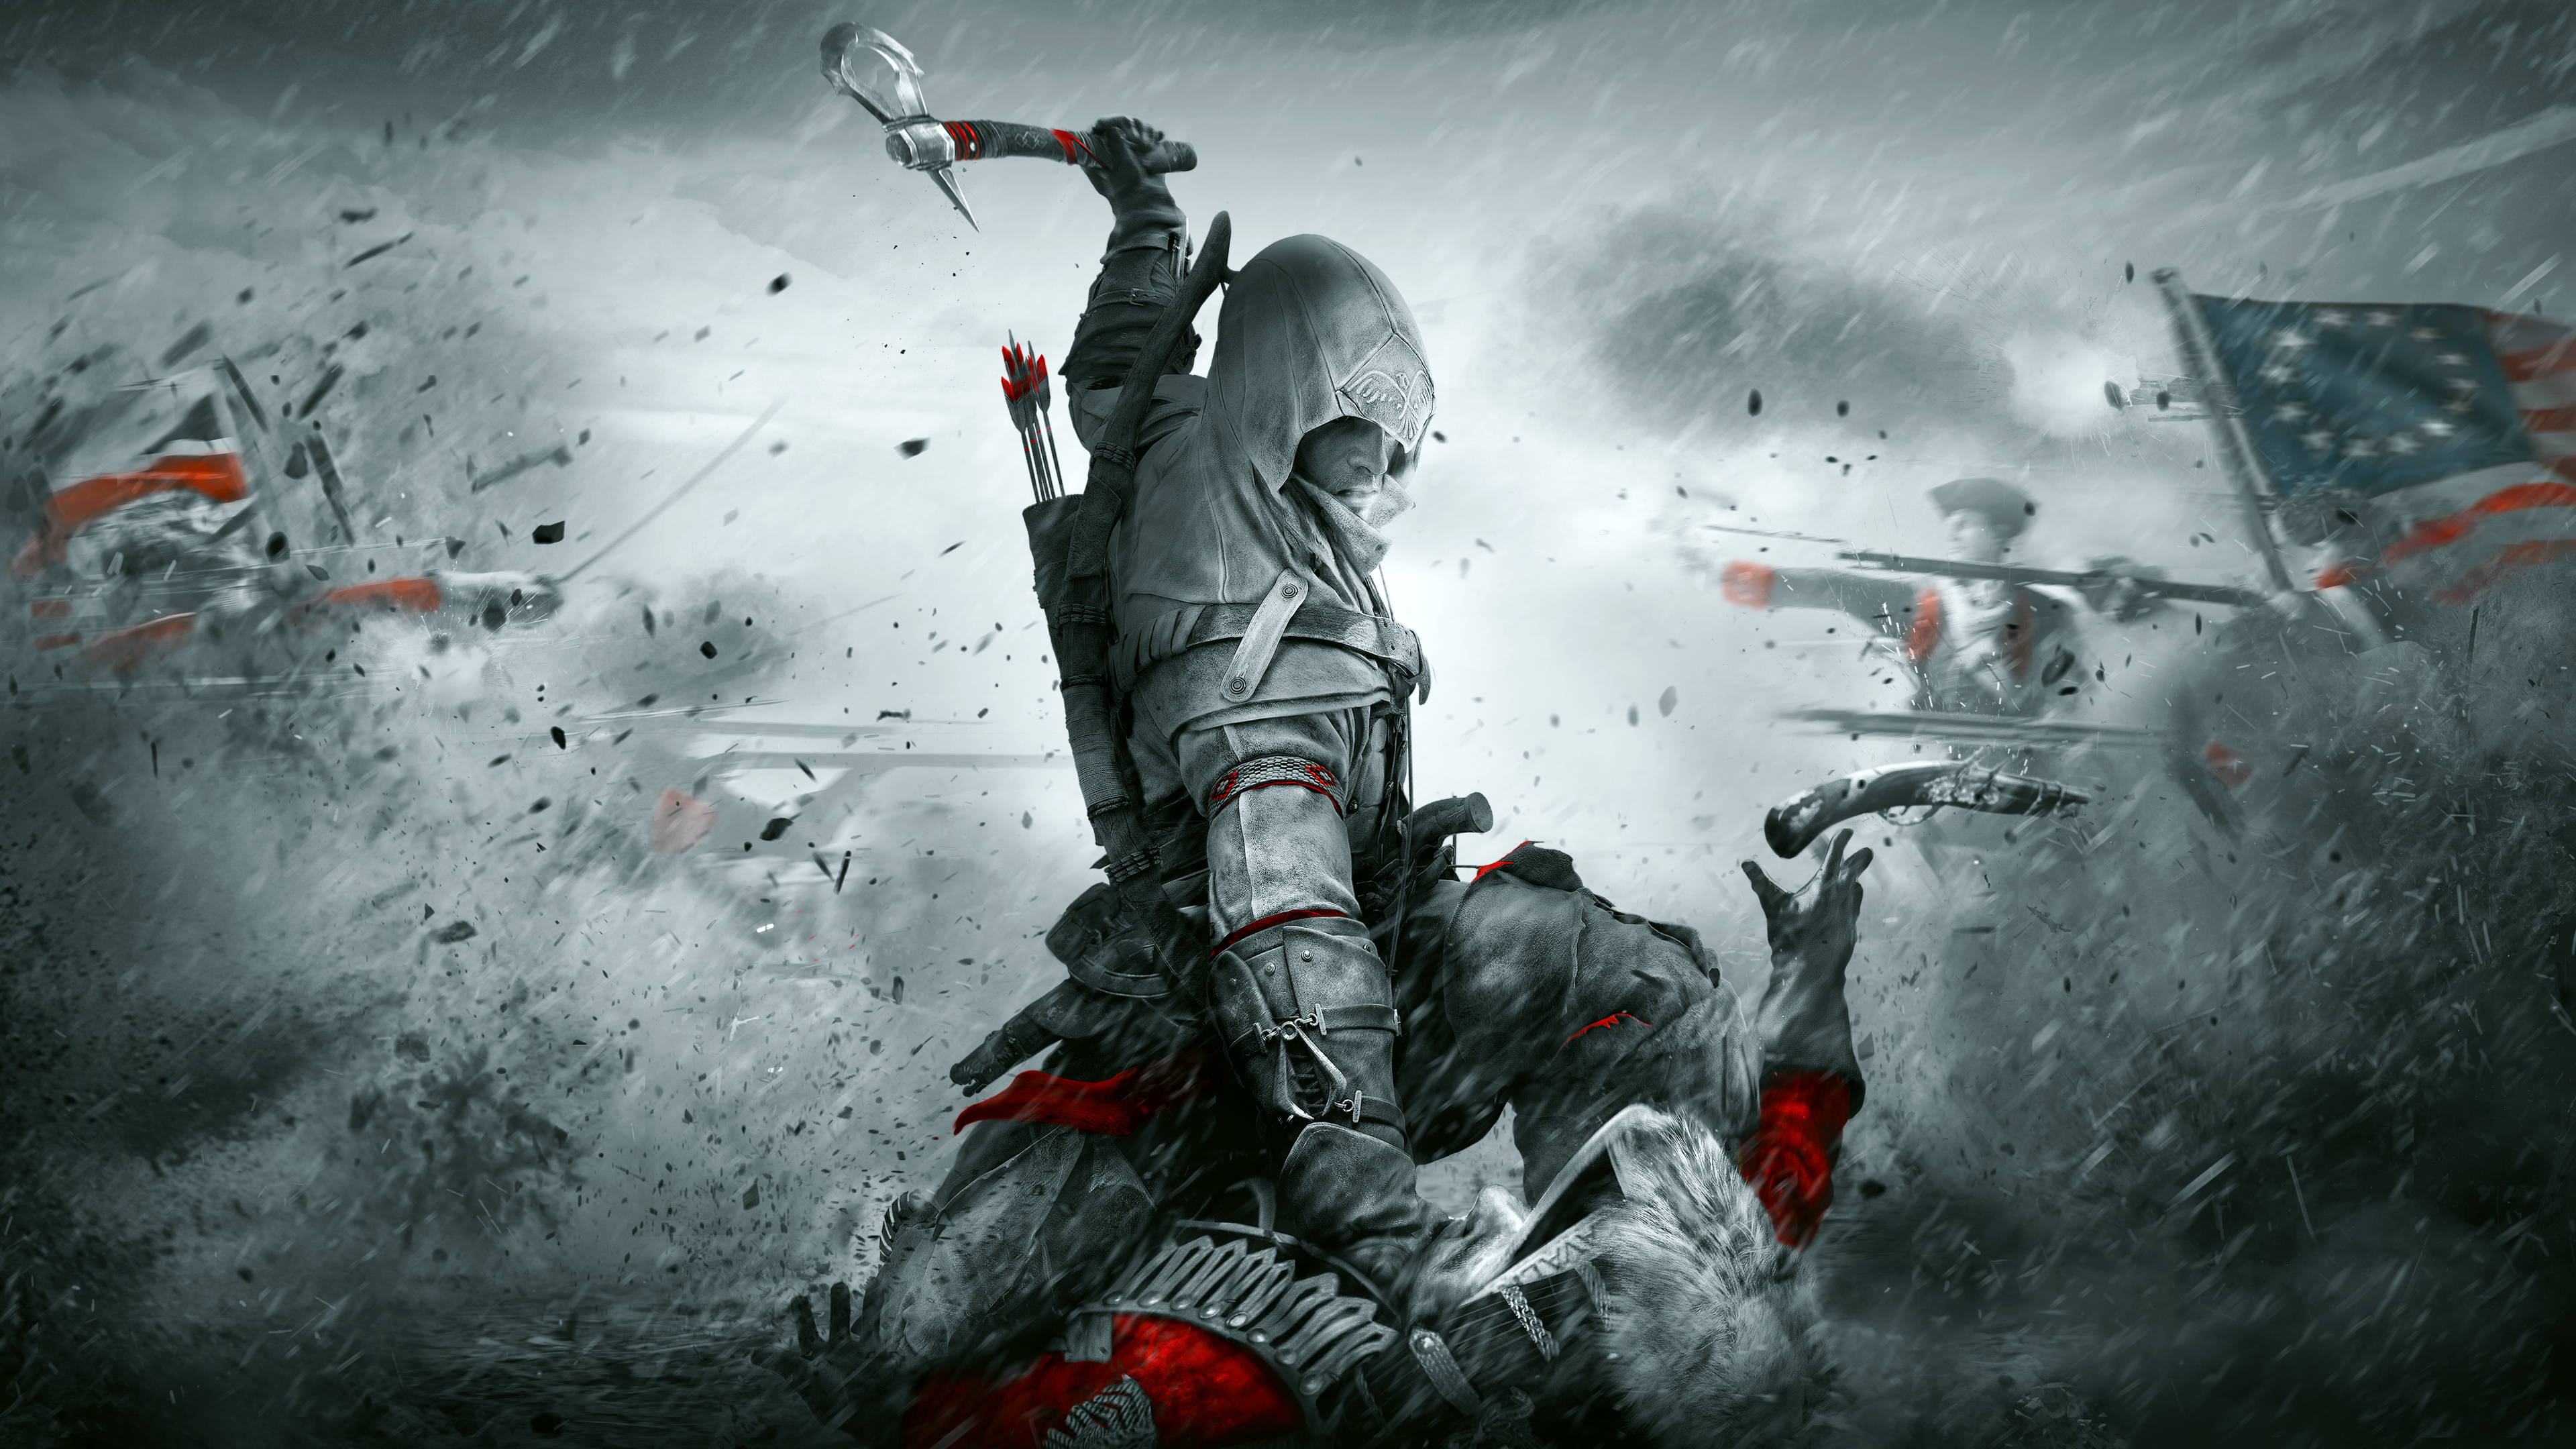 Assassin S Creed 3 4k Wallpaper Hd Games 4k Wallpapers Images